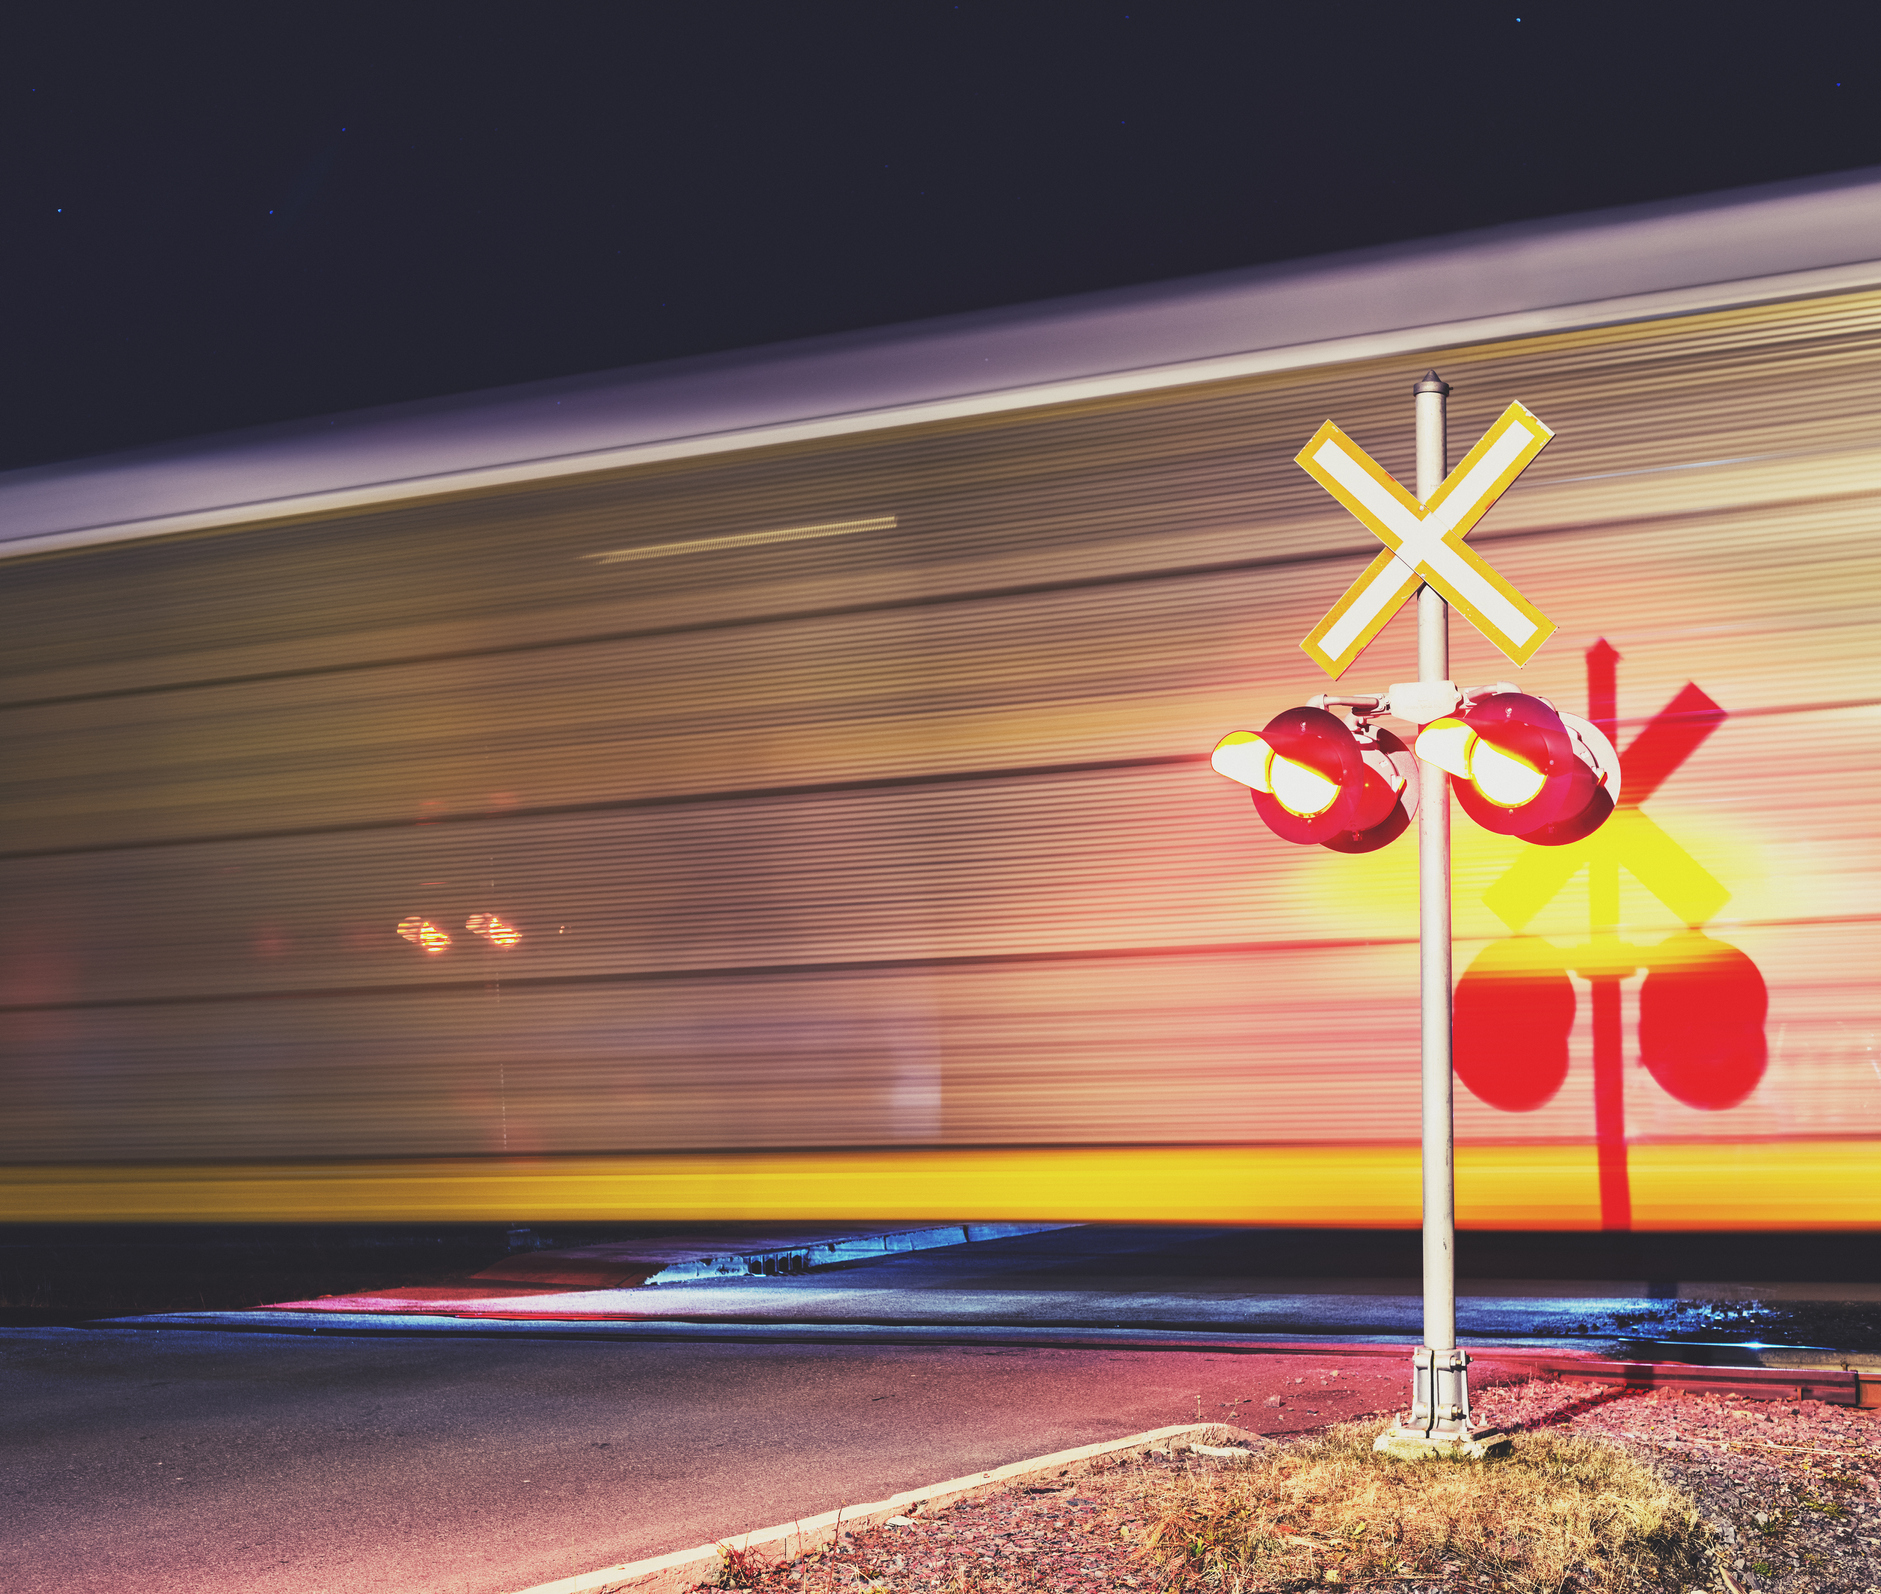 train speeding past on railroad track with railroad sign flashing